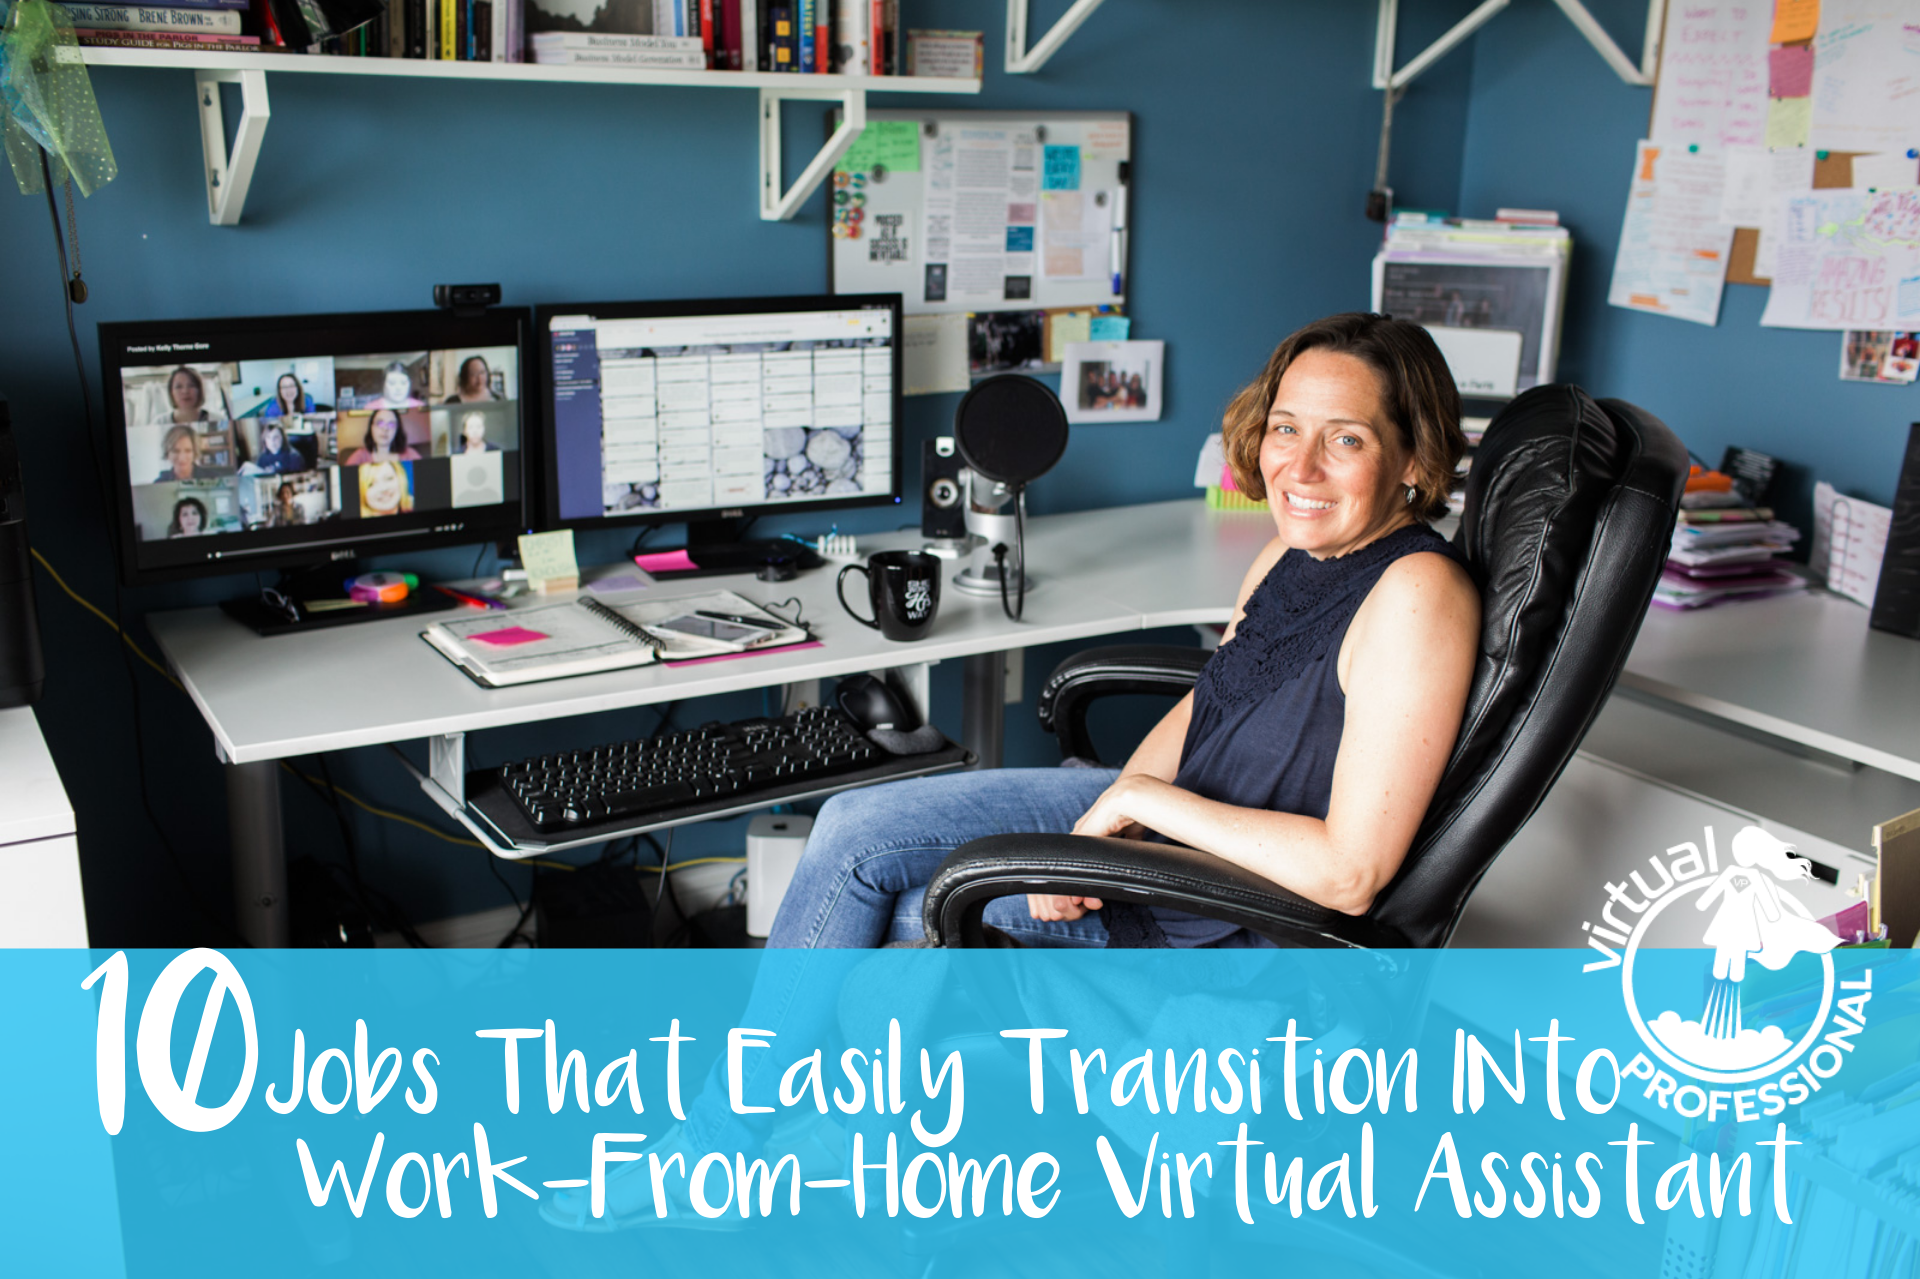 10 jobs that can transition to work-from-home virtual assistant jobs